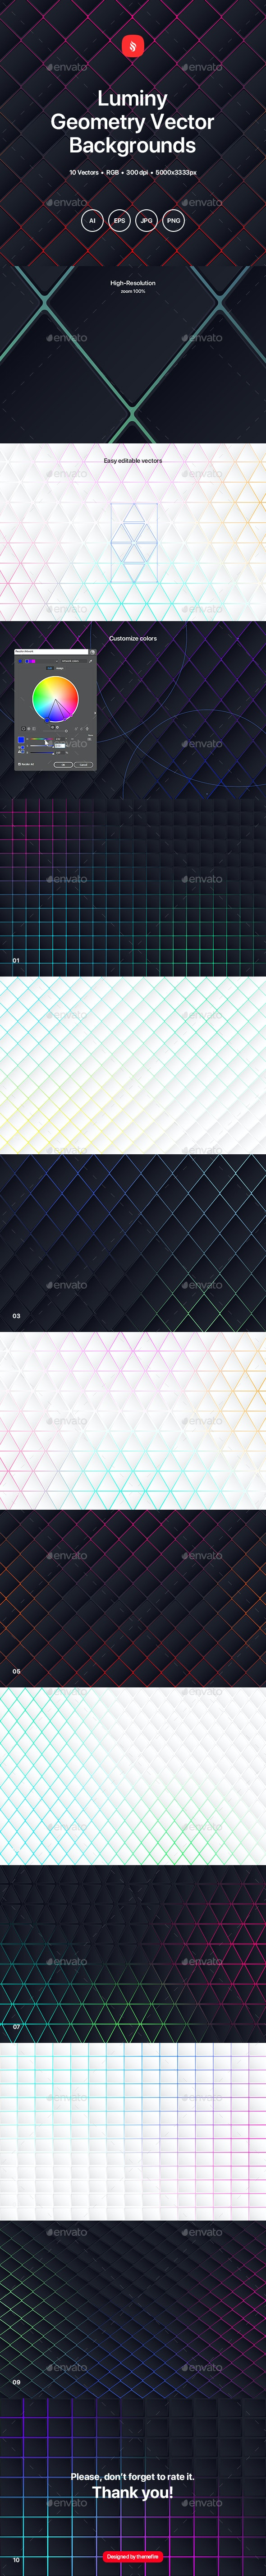 Luminy - Geometry Vector Backgrounds - Patterns Backgrounds